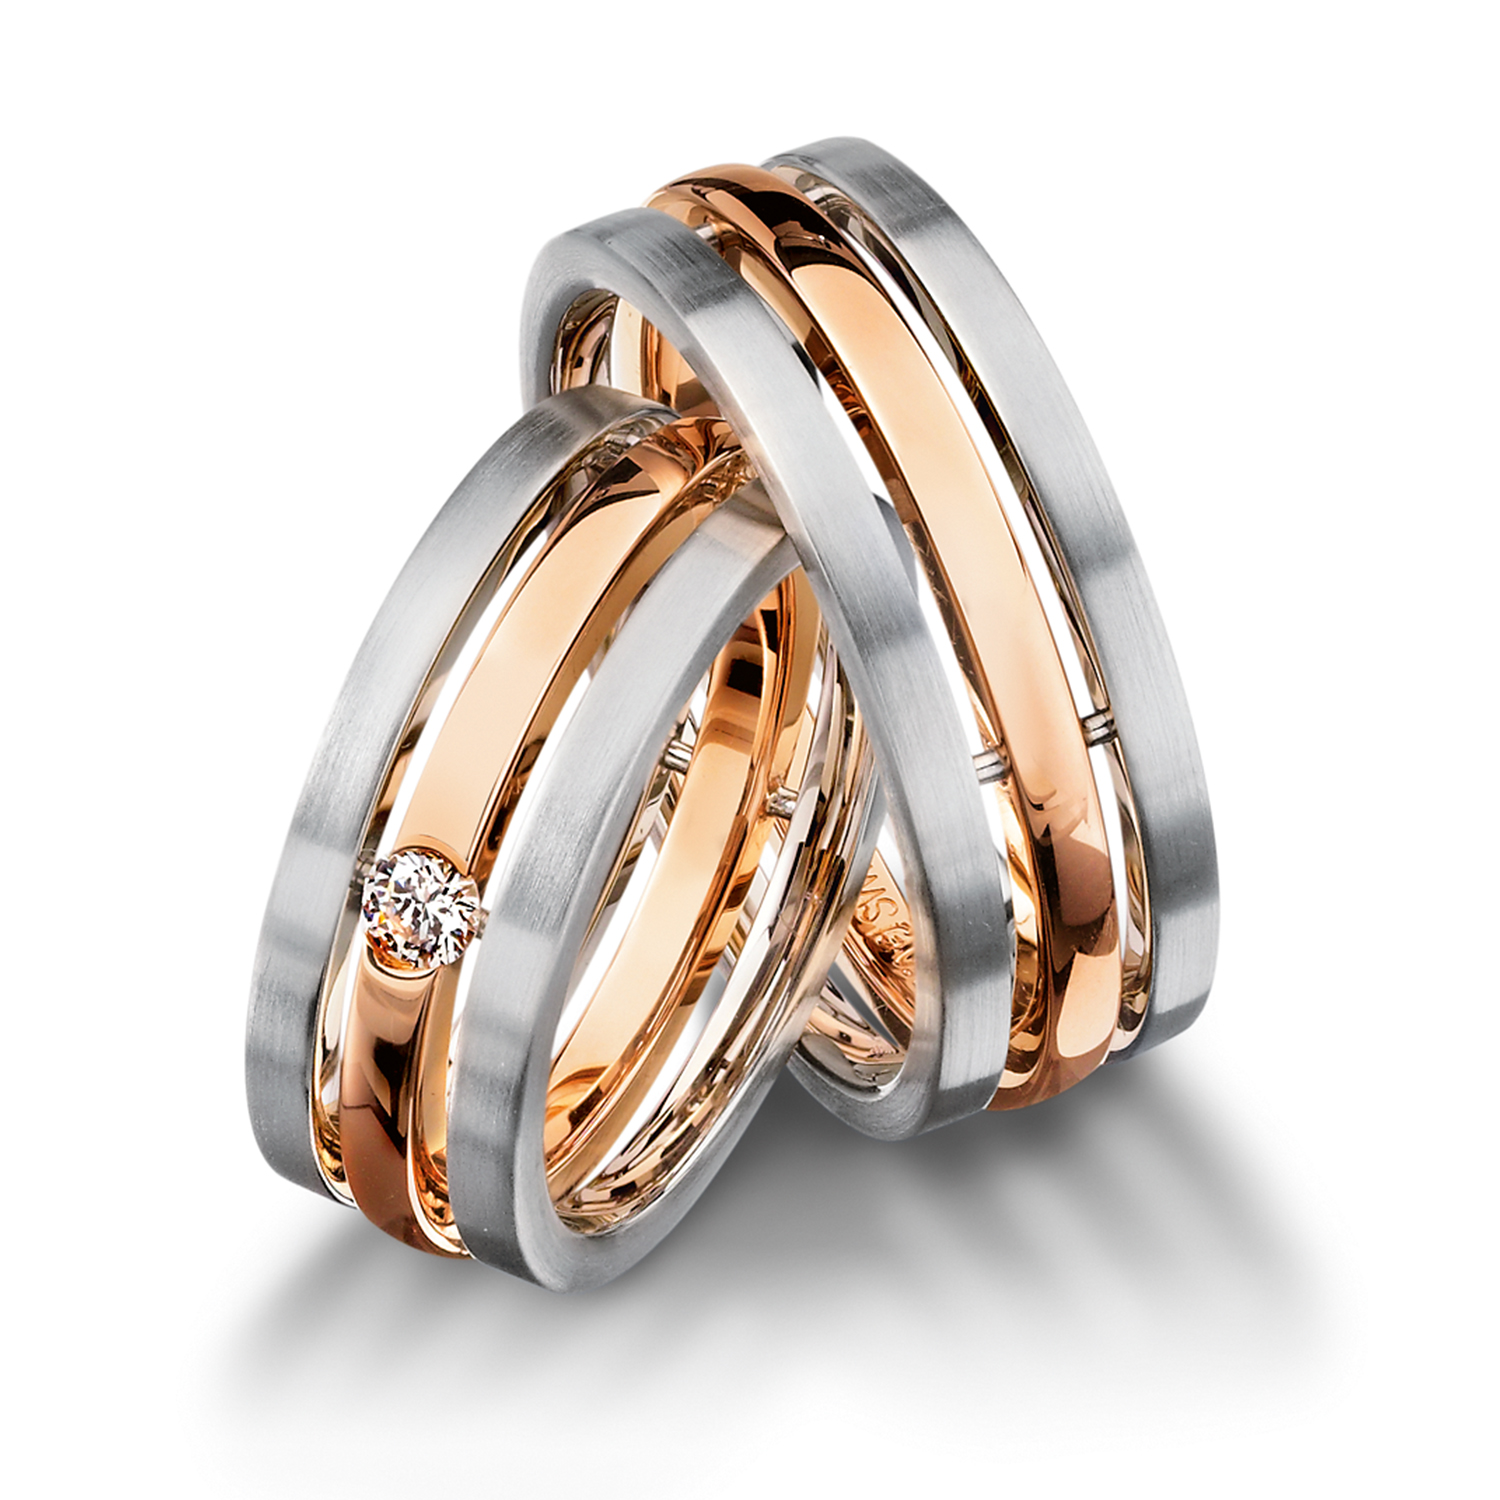 wedding bands, wedding rings, in gold, platinum, palladium, bicolor, with diamonds